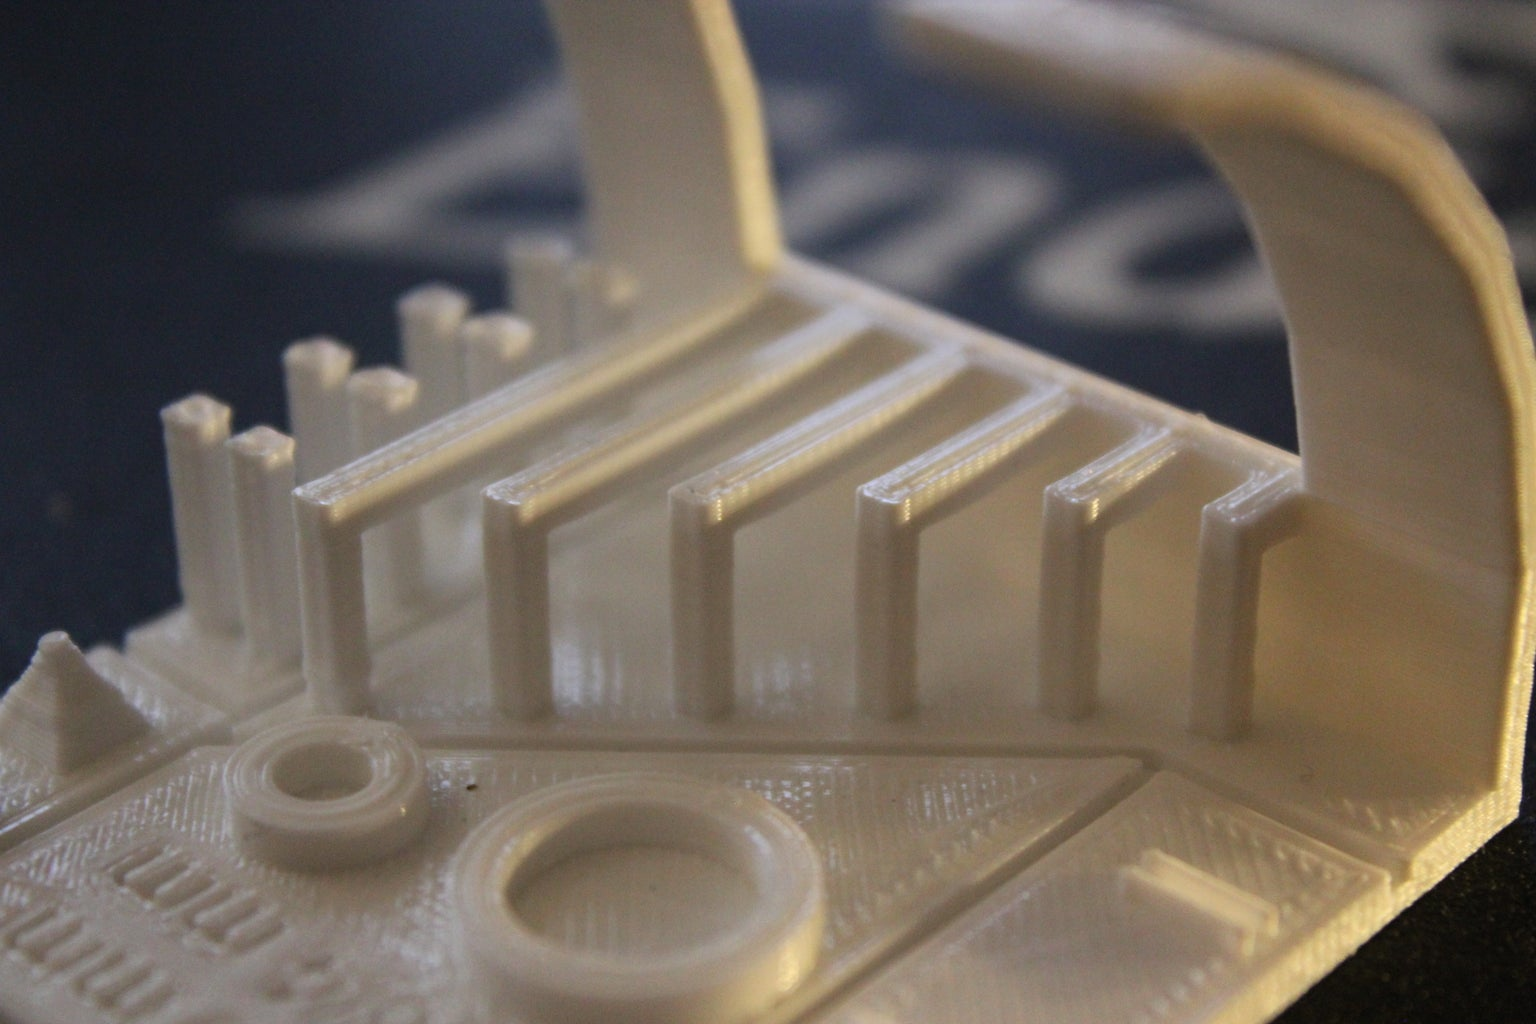 *MICRO* All in One 3D Printer Test